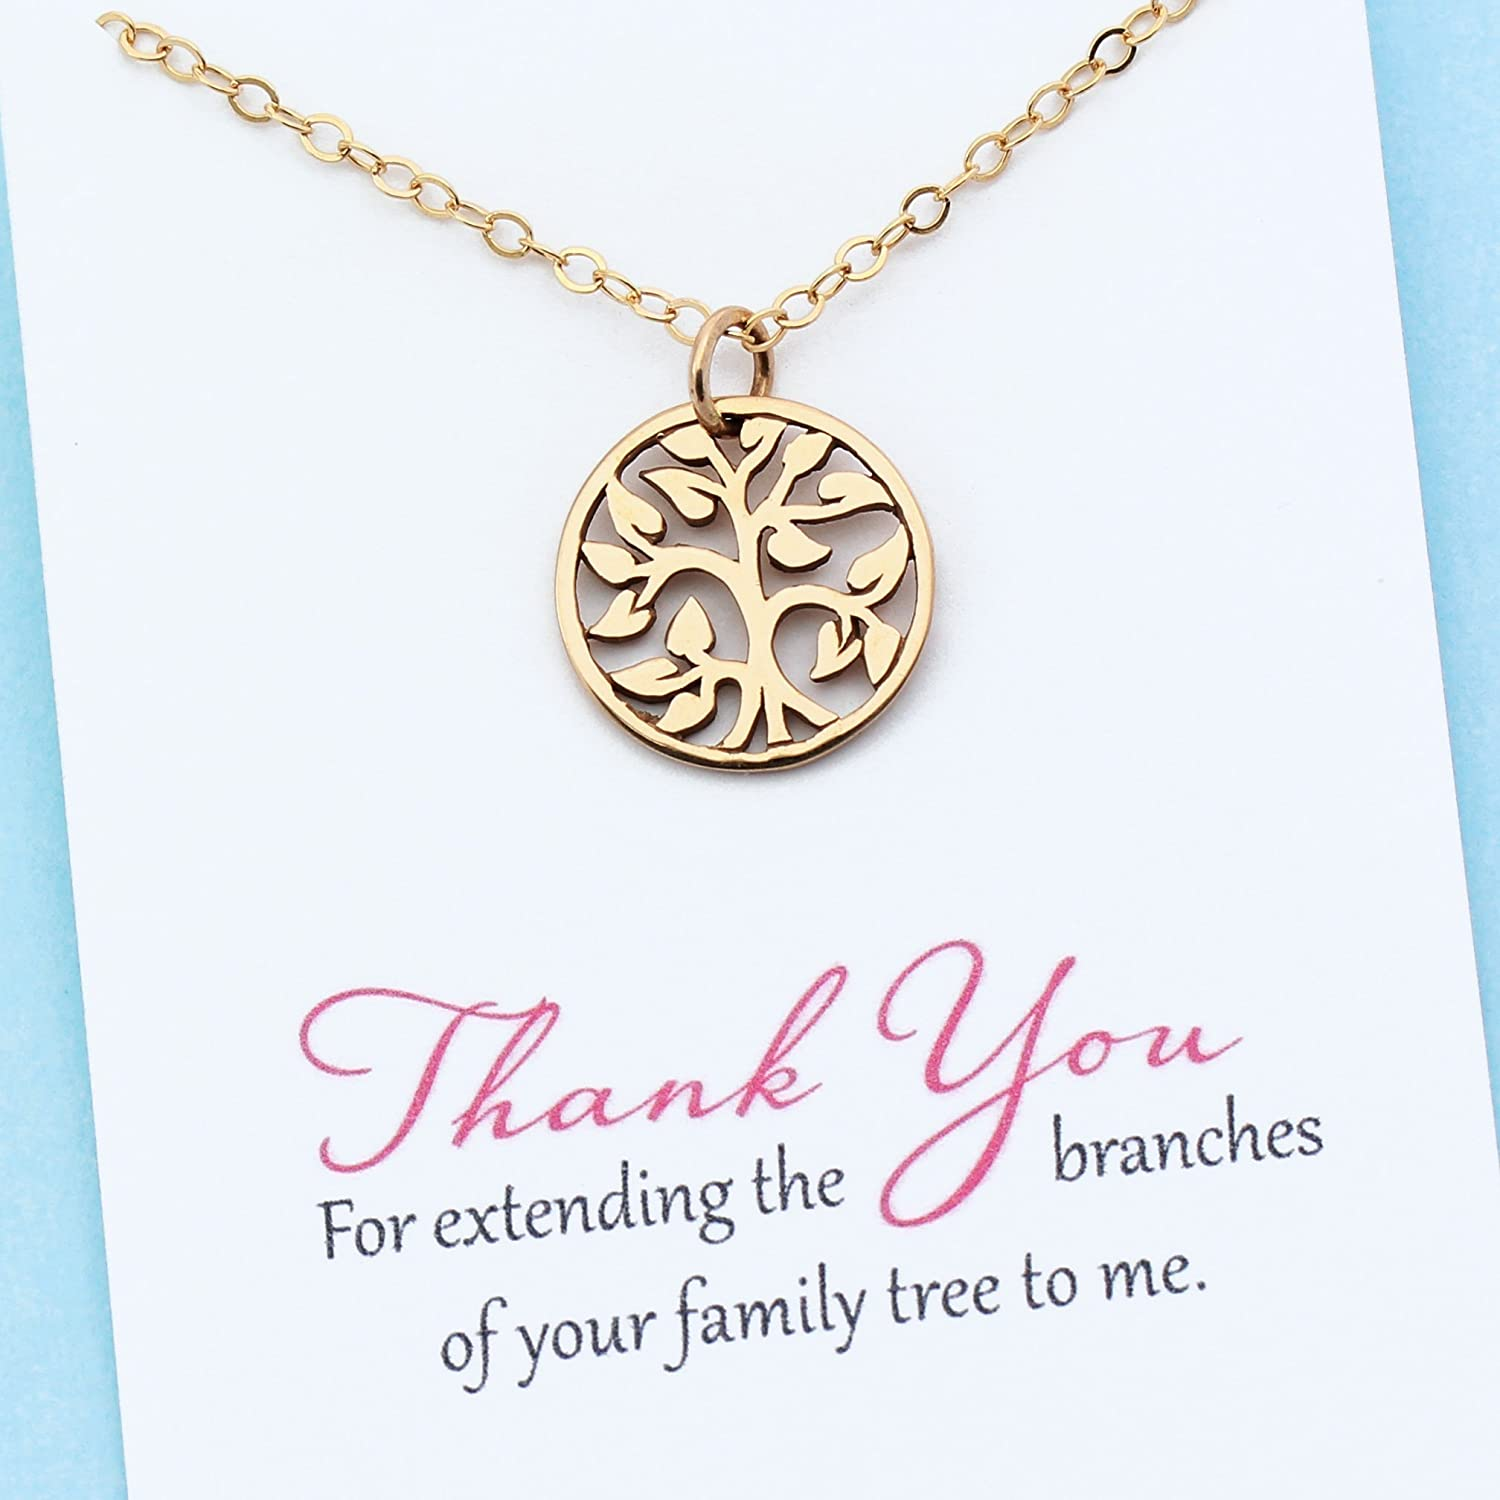 Unbiological Mom Jewelry Personalized Gift for Mother In Law Stepmom Foster Mother 14k Gold Filled Chain Family Tree Necklace